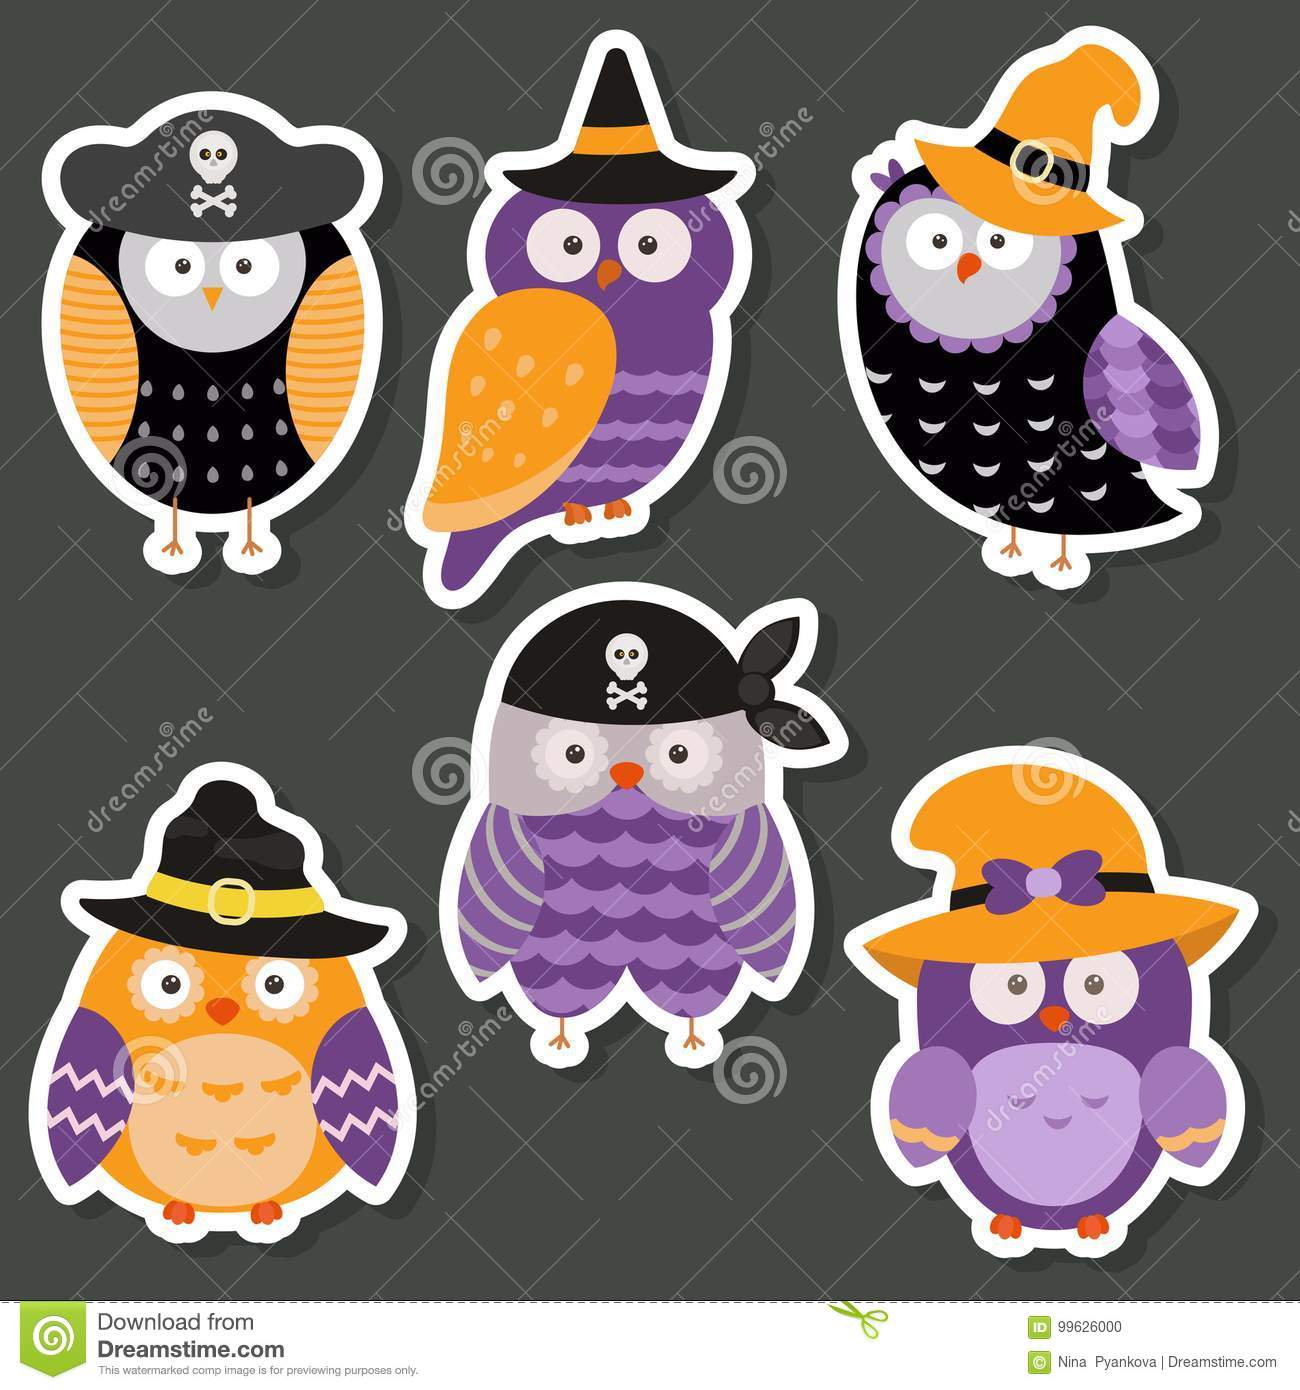 Cute Owl Decor Set Of Cute Owls Stock Vector Illustration Of Decor 99626000